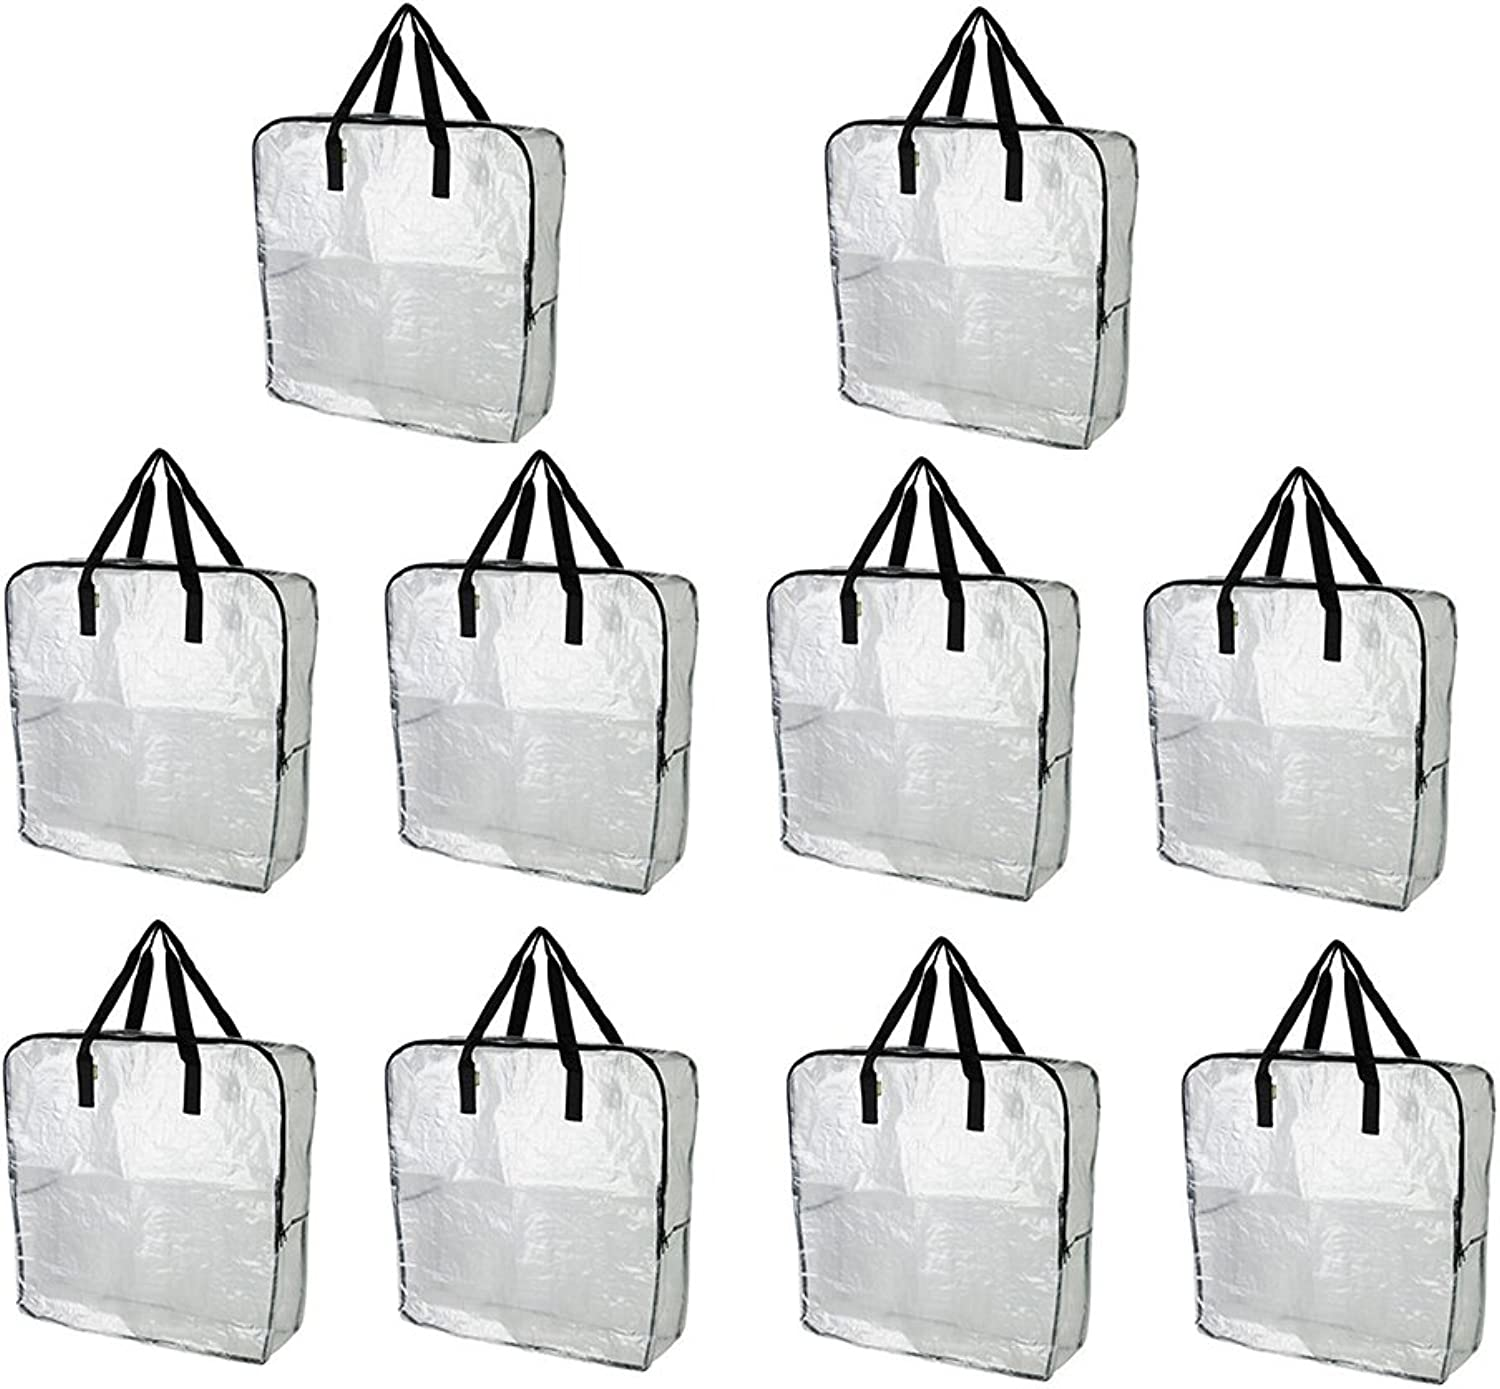 IKEA DIMPA Extra Large Storage Bag, Clear Heavy Duty Bags, Moth Moisture Predection Storage Bags (Pack of 10)